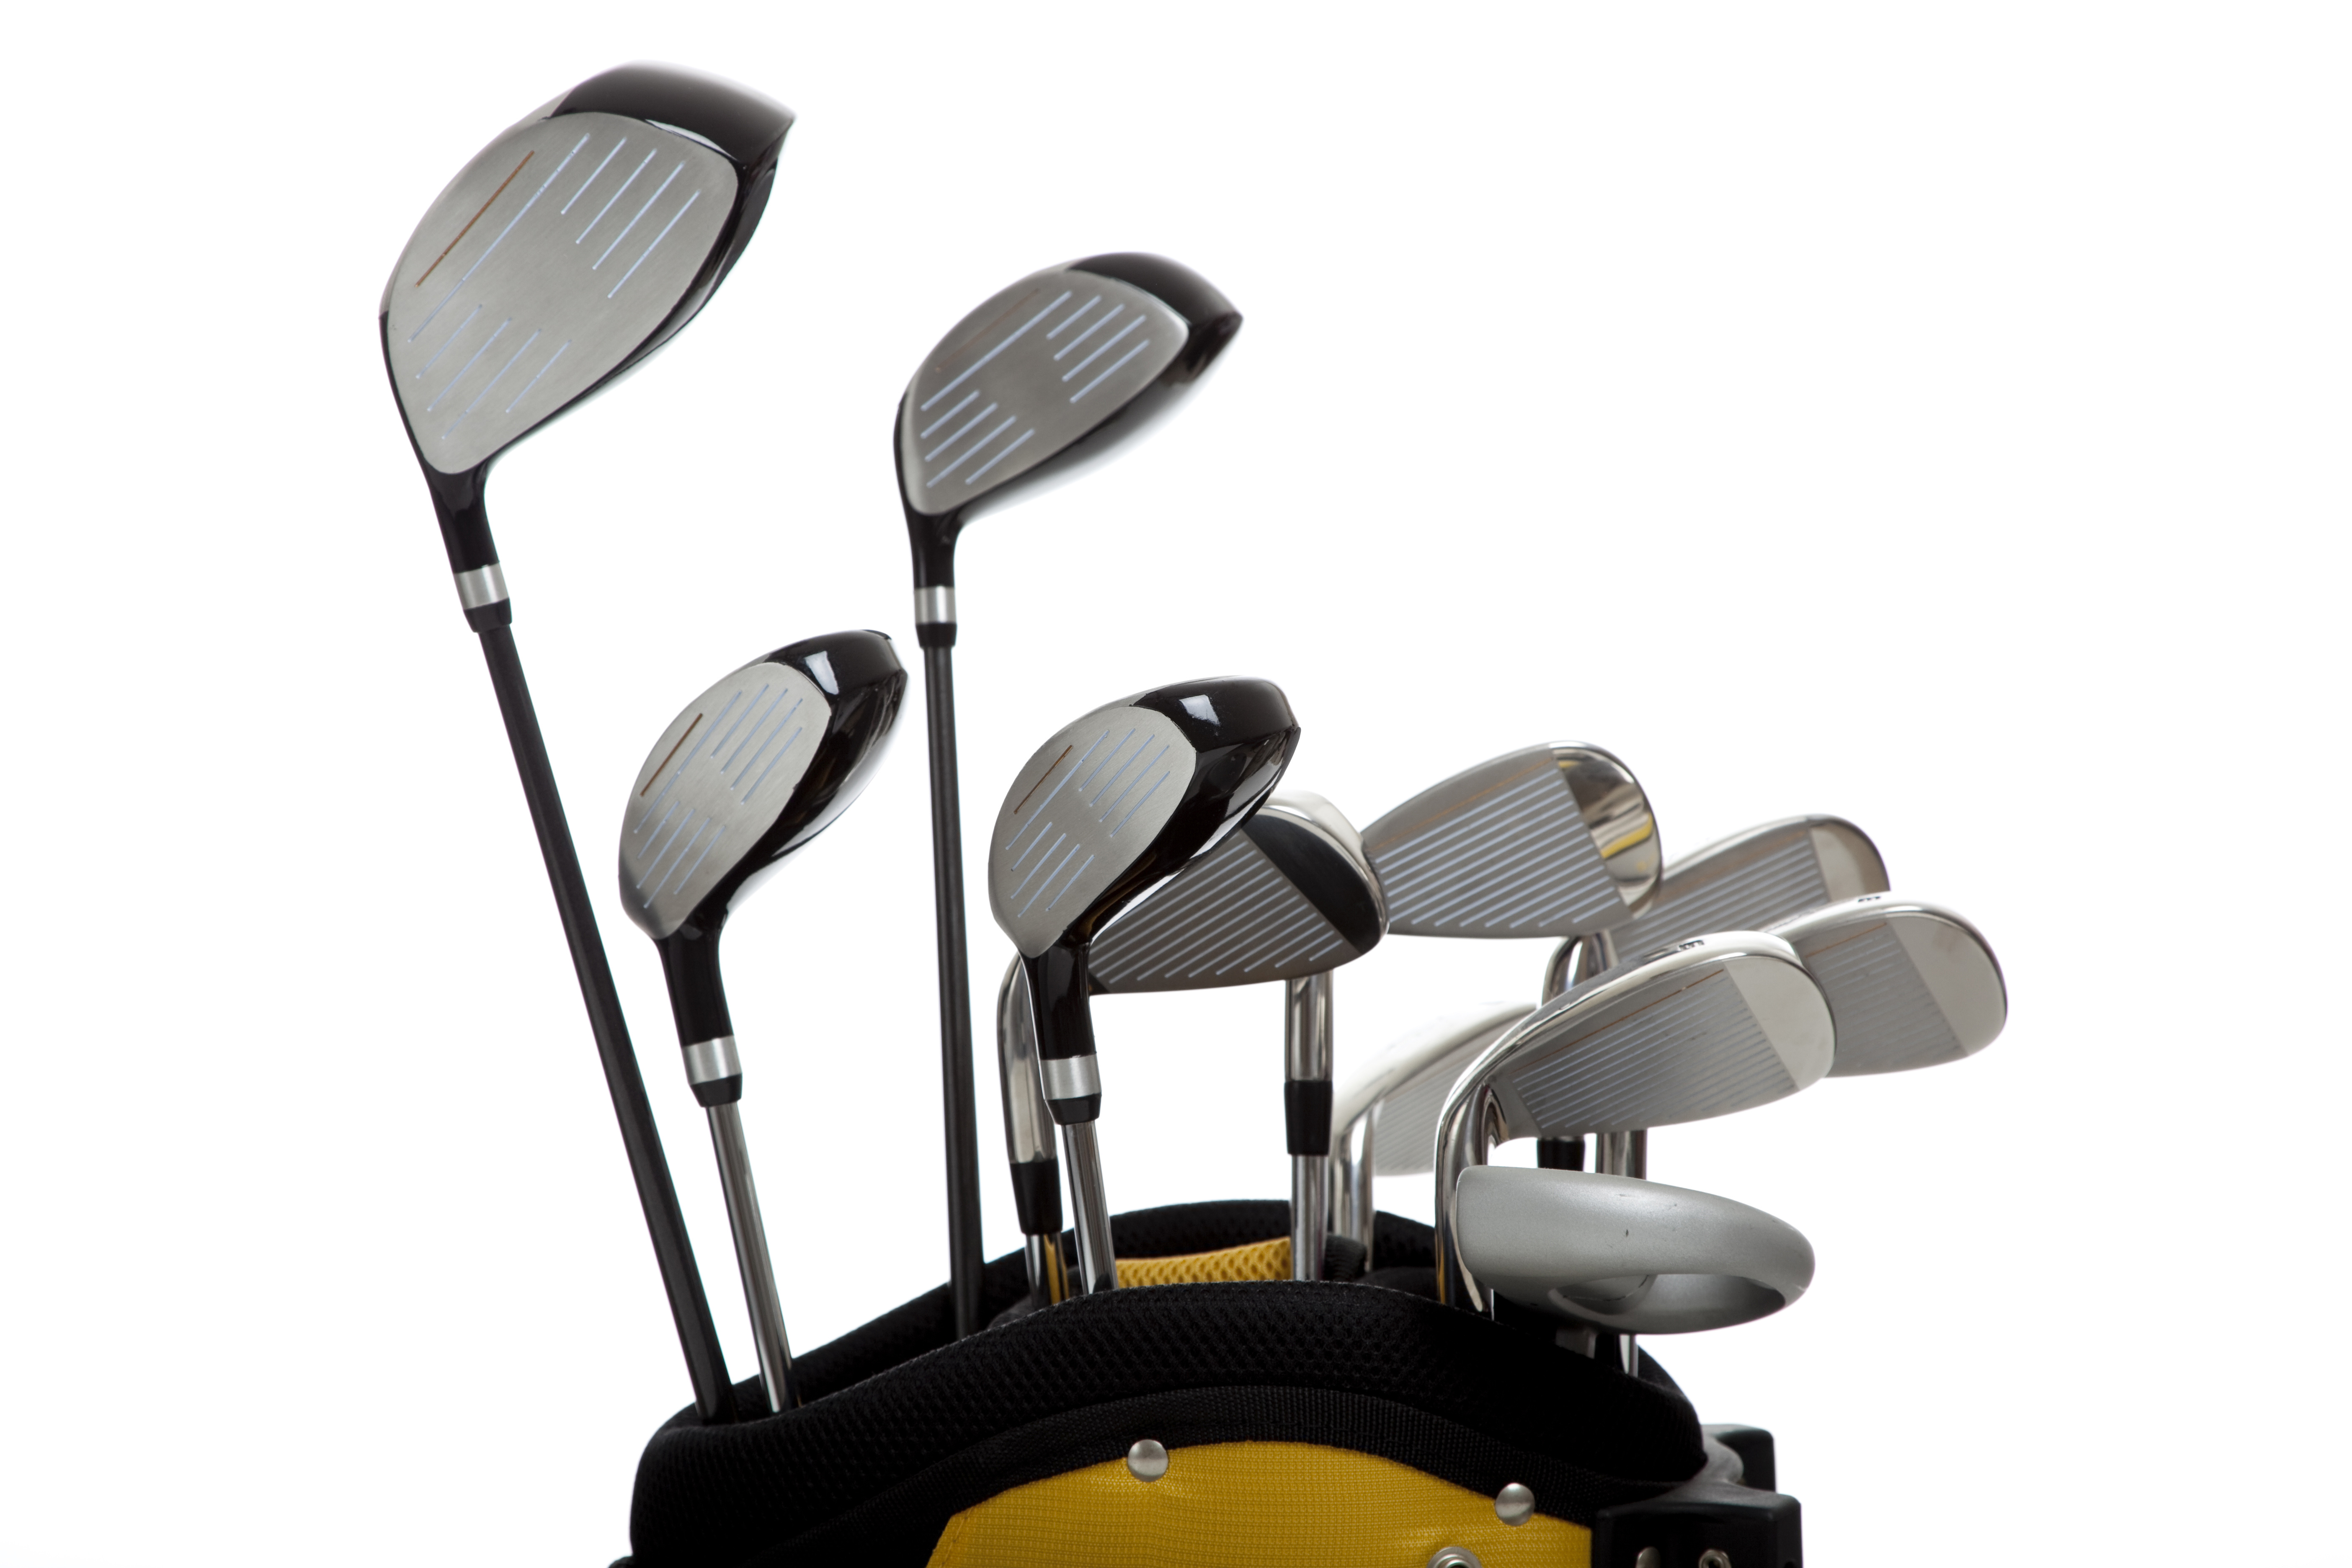 5616x3744 Set Of Golf Clubs Donald Trump Once Used Up For Auction Cbs Detroit